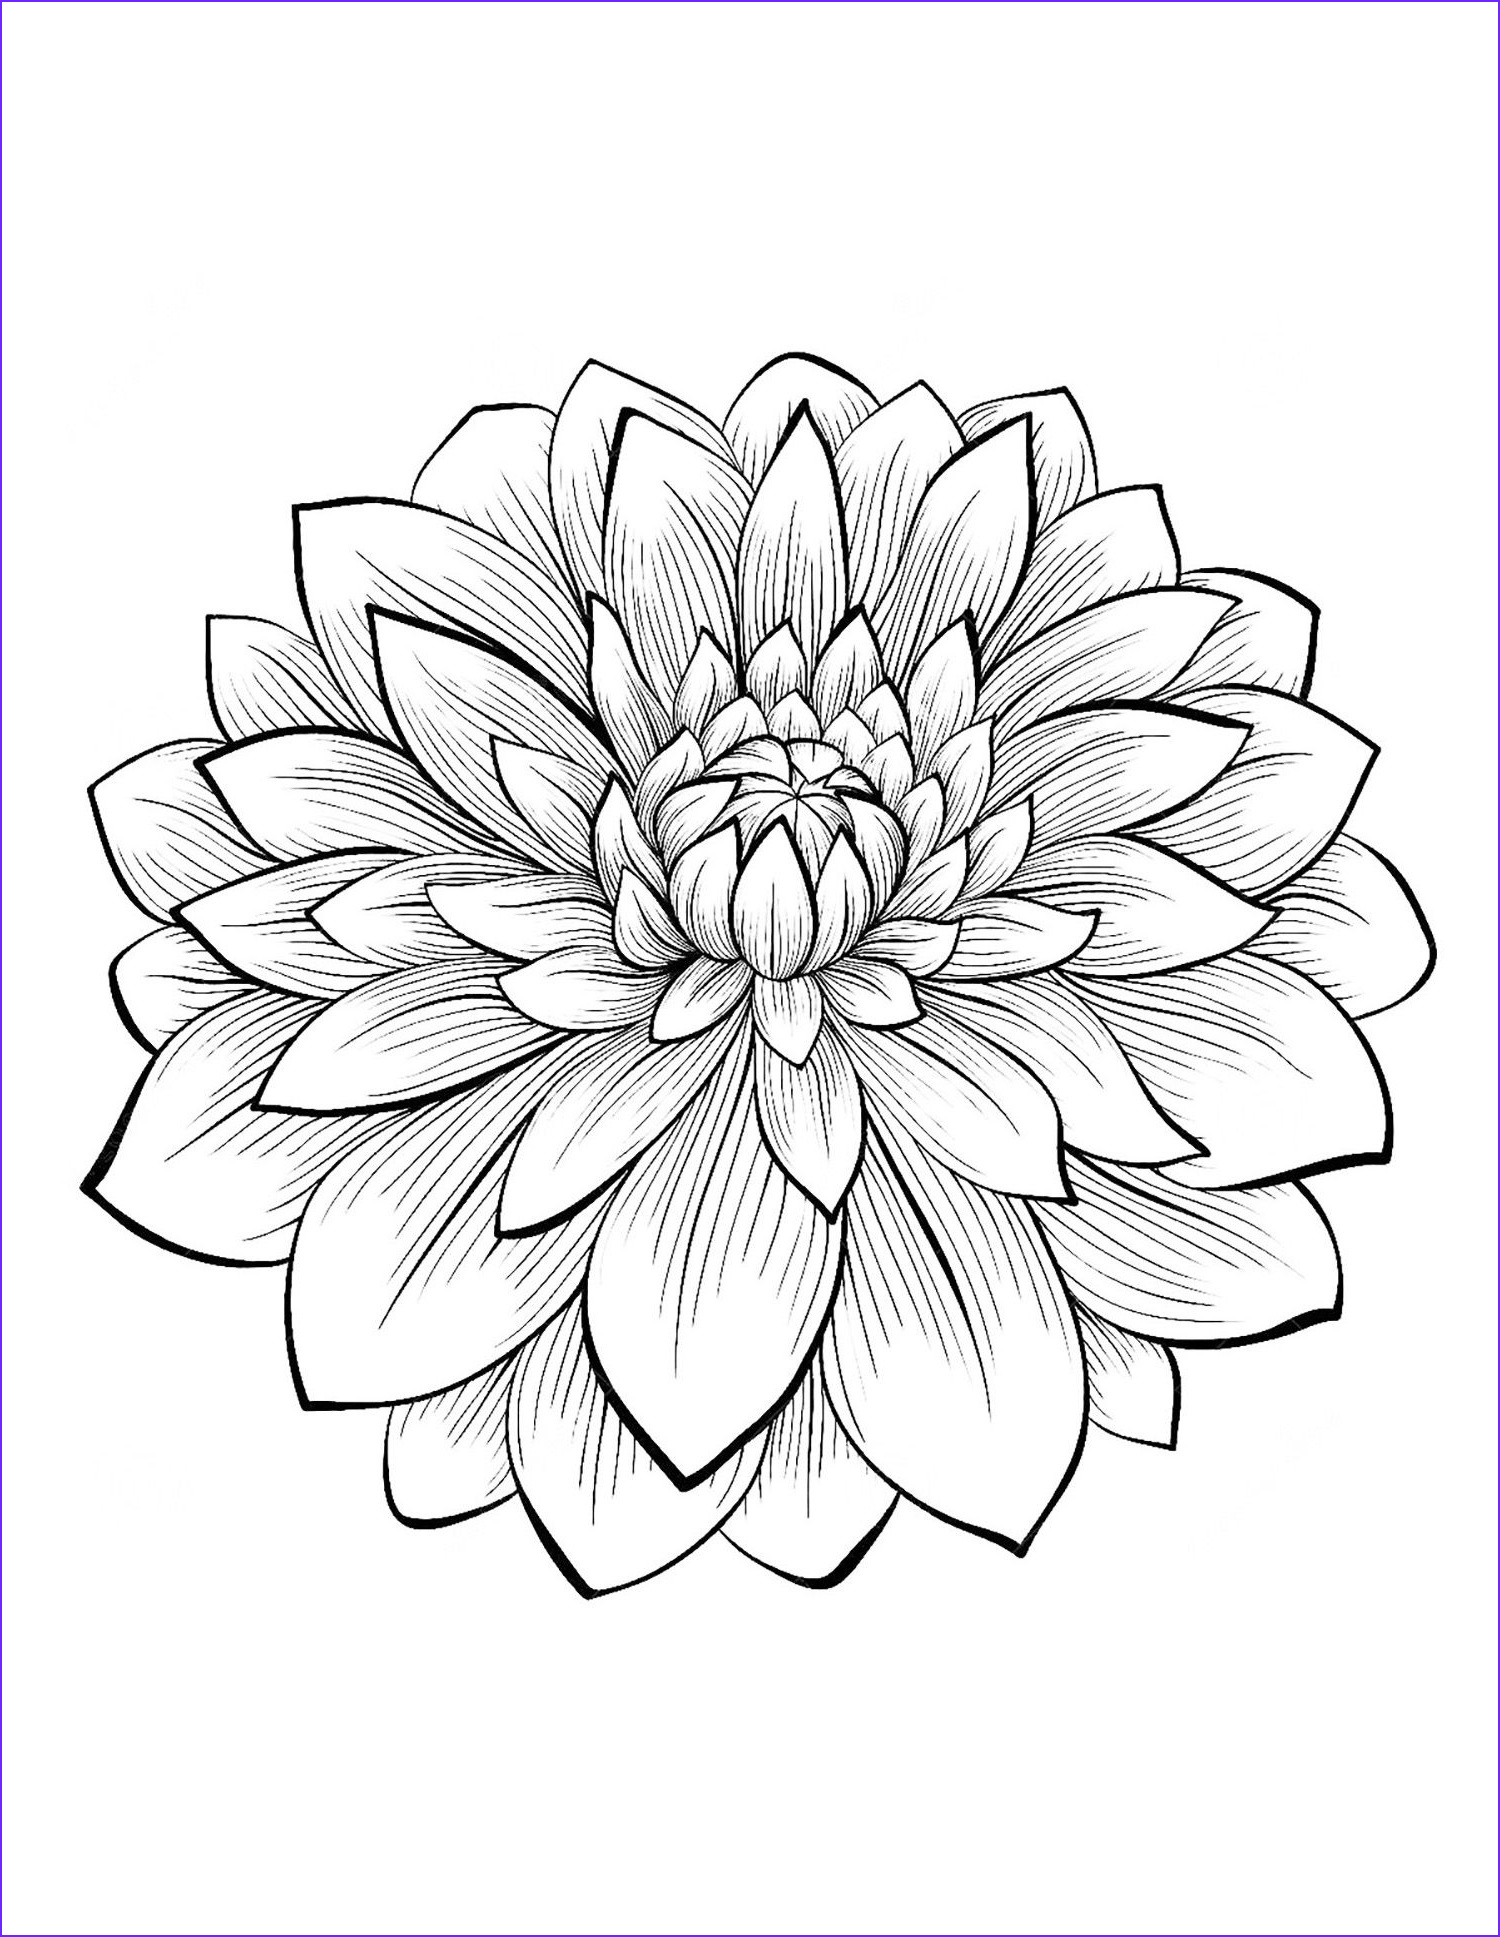 Flower Coloring Pages for Adults Inspirational Photos Dahlia Color One Of the Most Beautiful Flowers From the